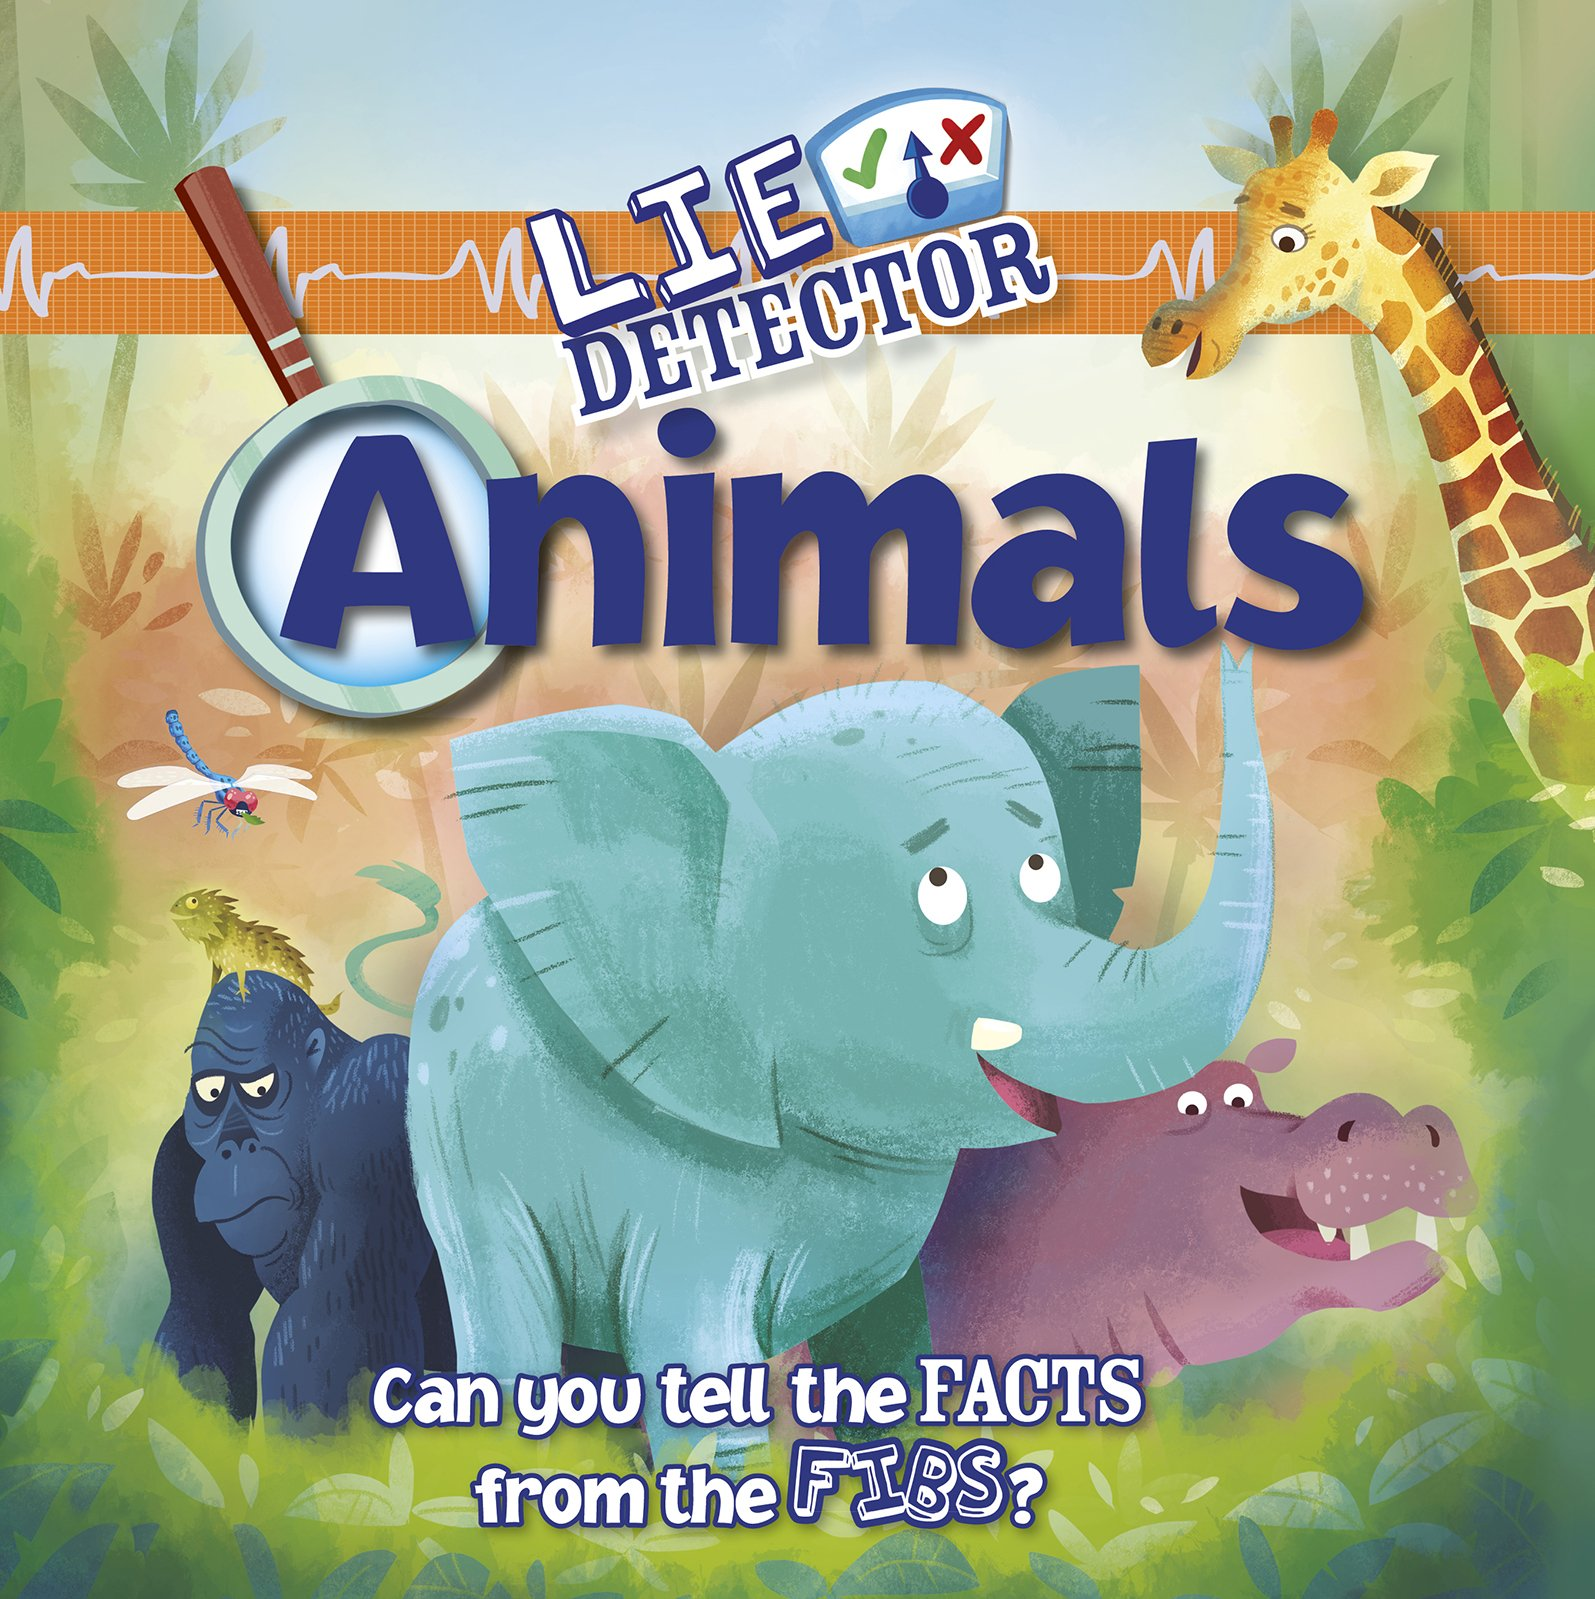 Animals: Can You Tell the Facts from the Fibs? (Lie Detector) Paperback – August 1, 2015